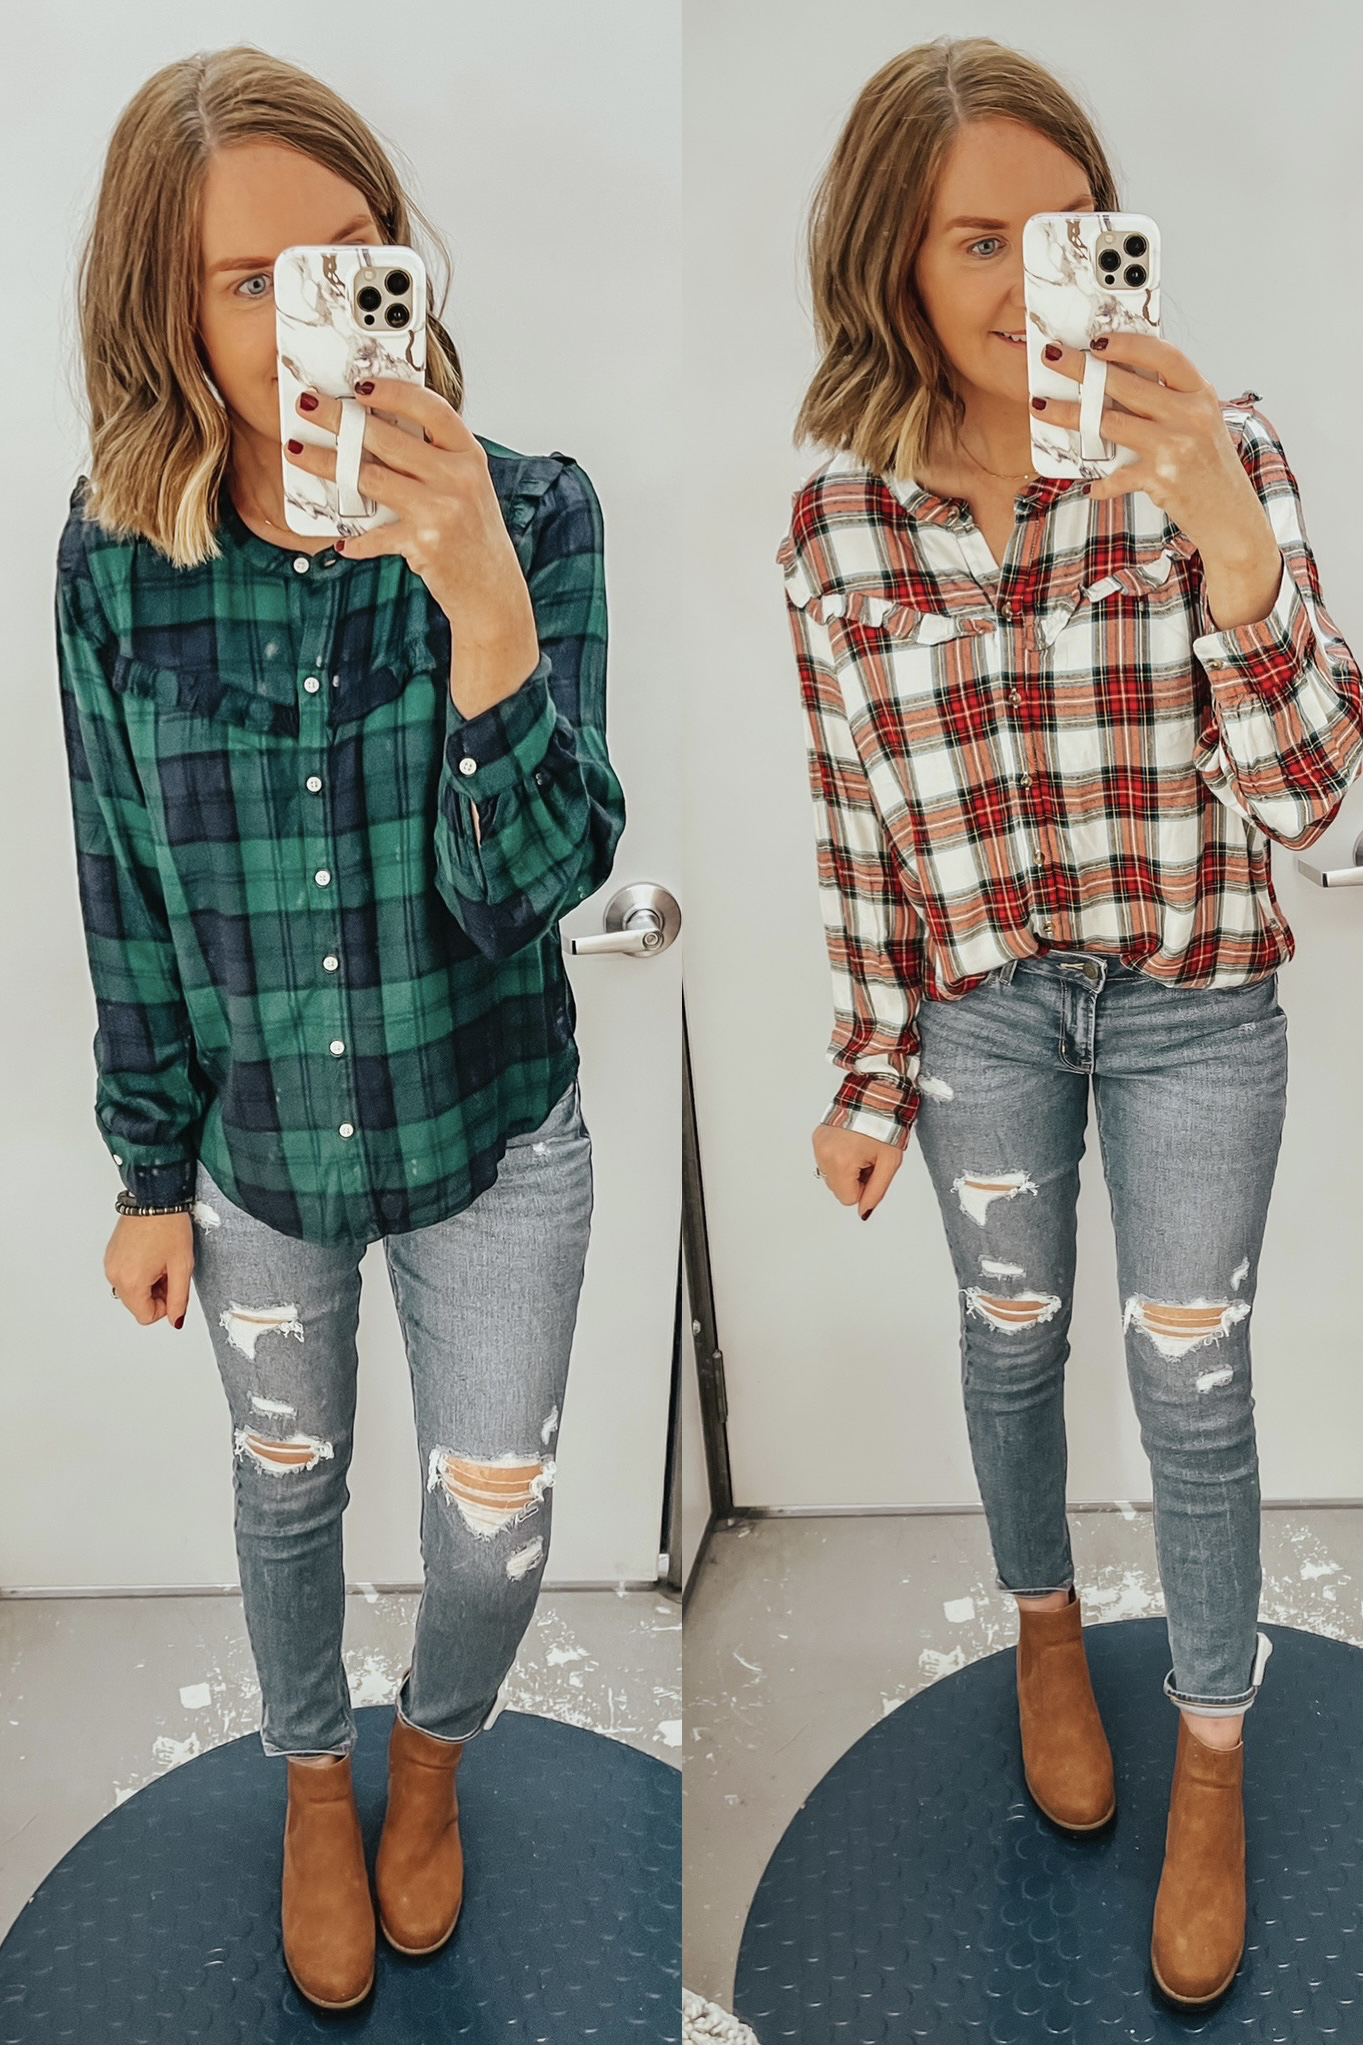 plaid shirt with ruffle, Christmas outfit idea, holiday plaid